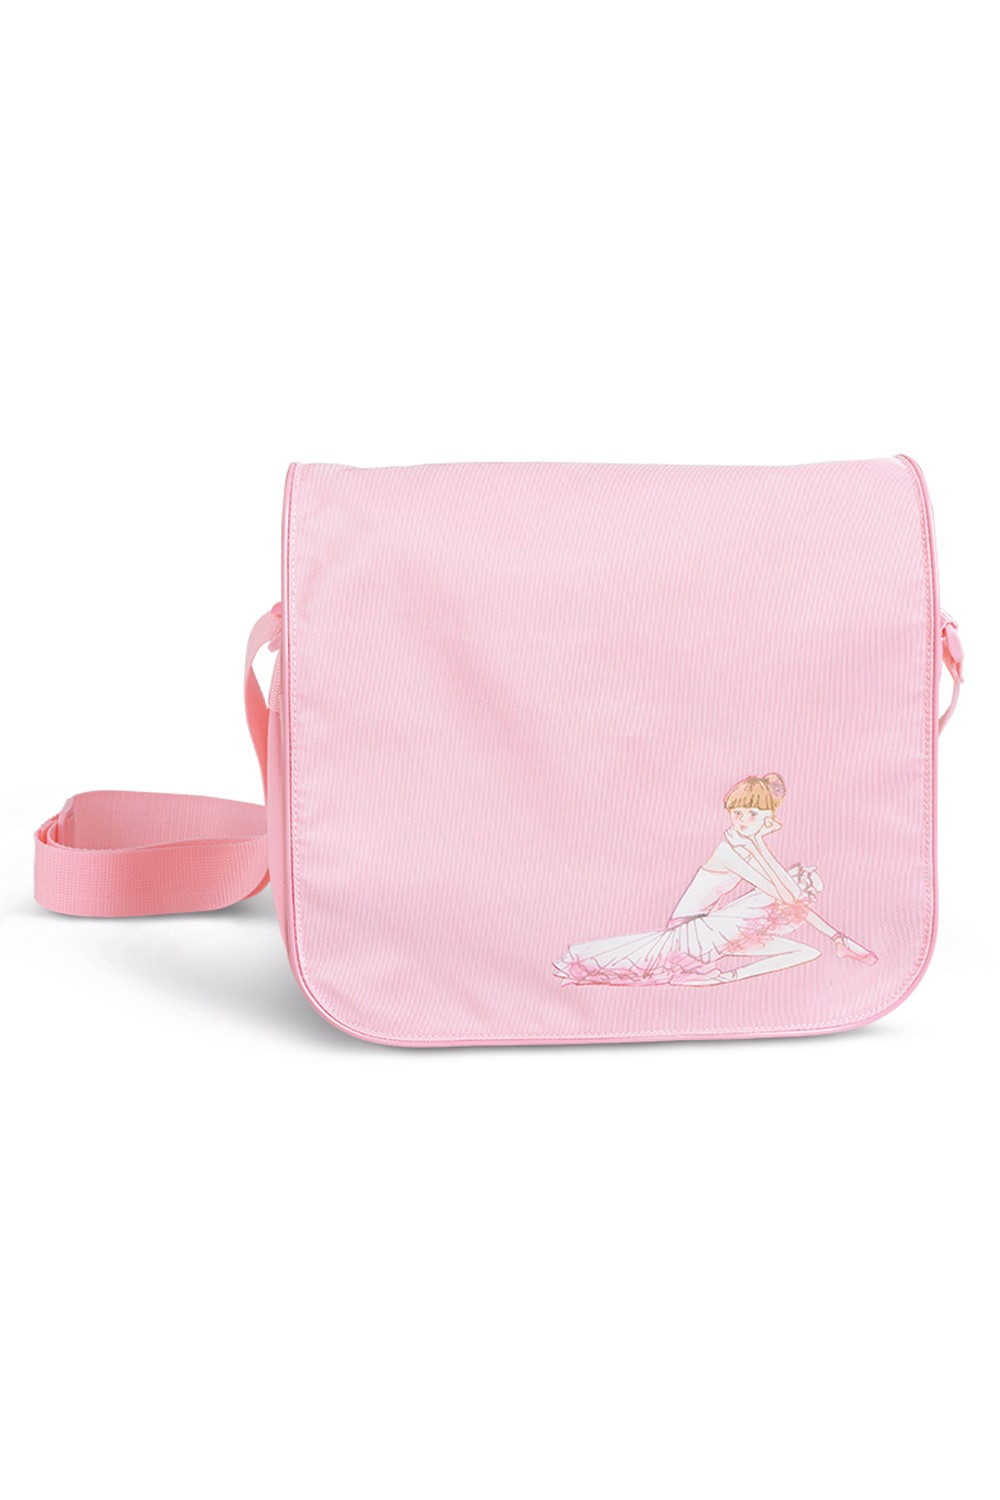 Girls Shoulder Bag Dance Bags